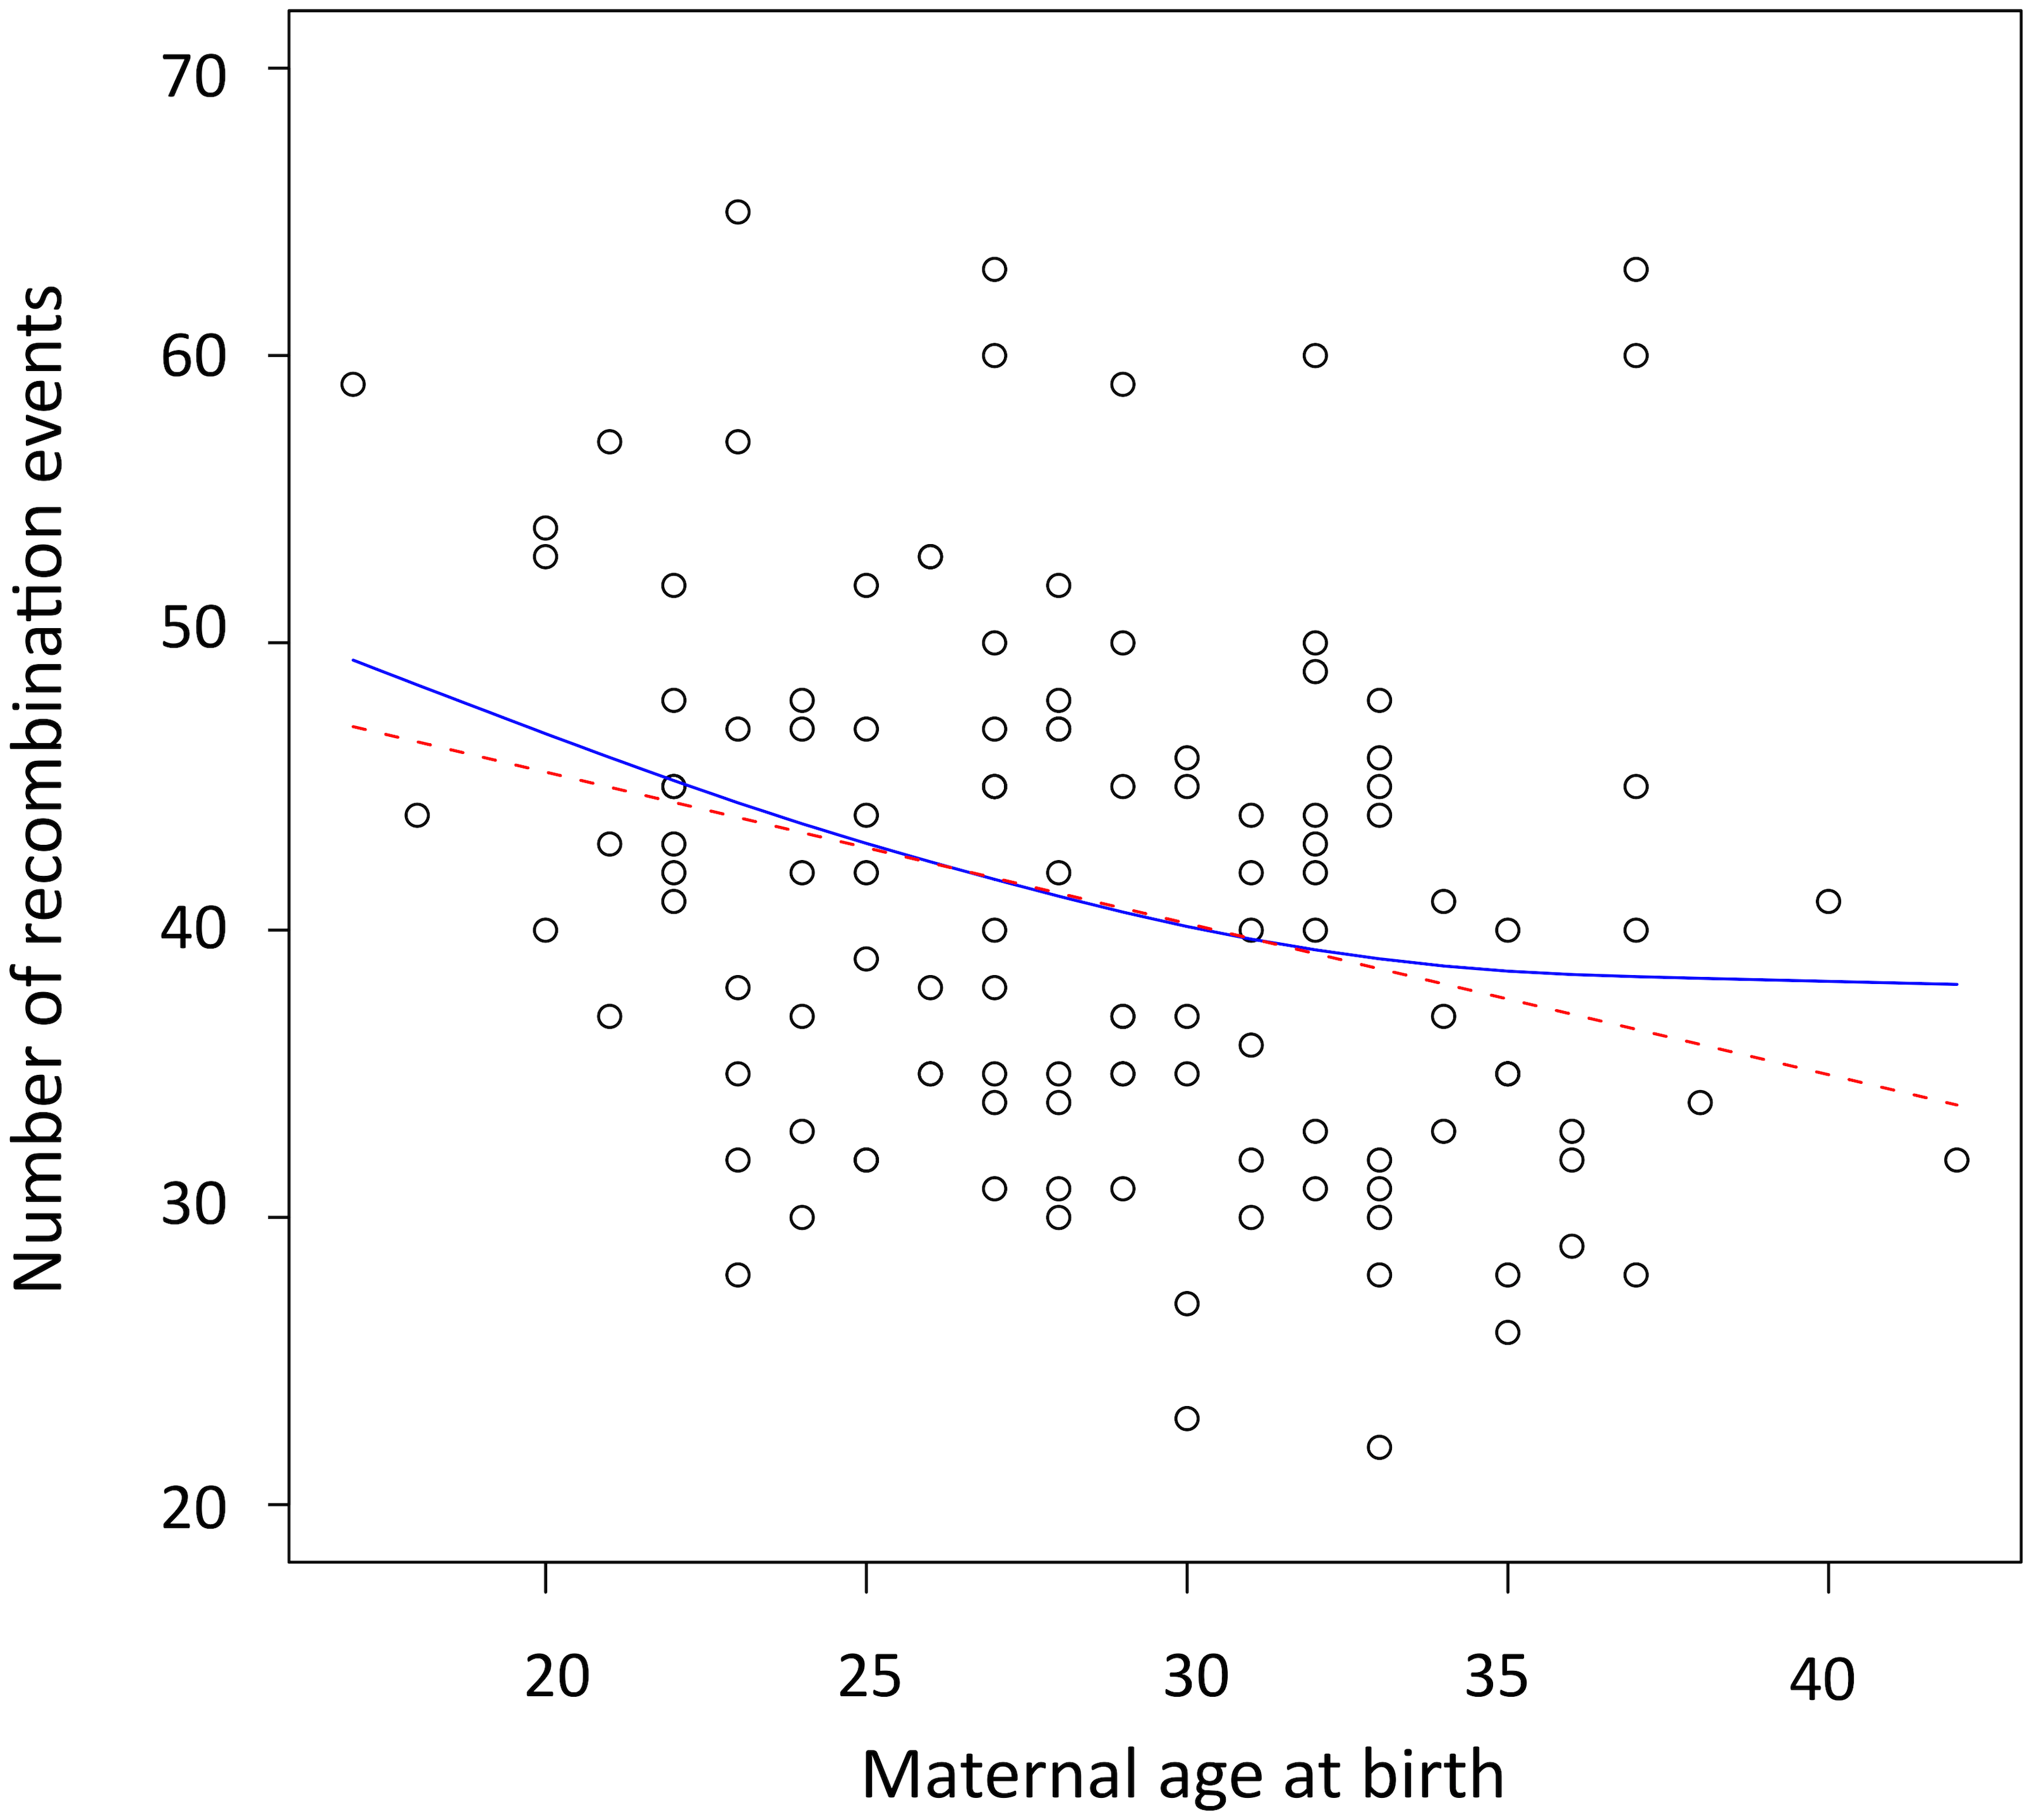 Scatterplot and fitted regression functions showing negative correlation between the maternal age at birth and the number of recombination events in offspring.